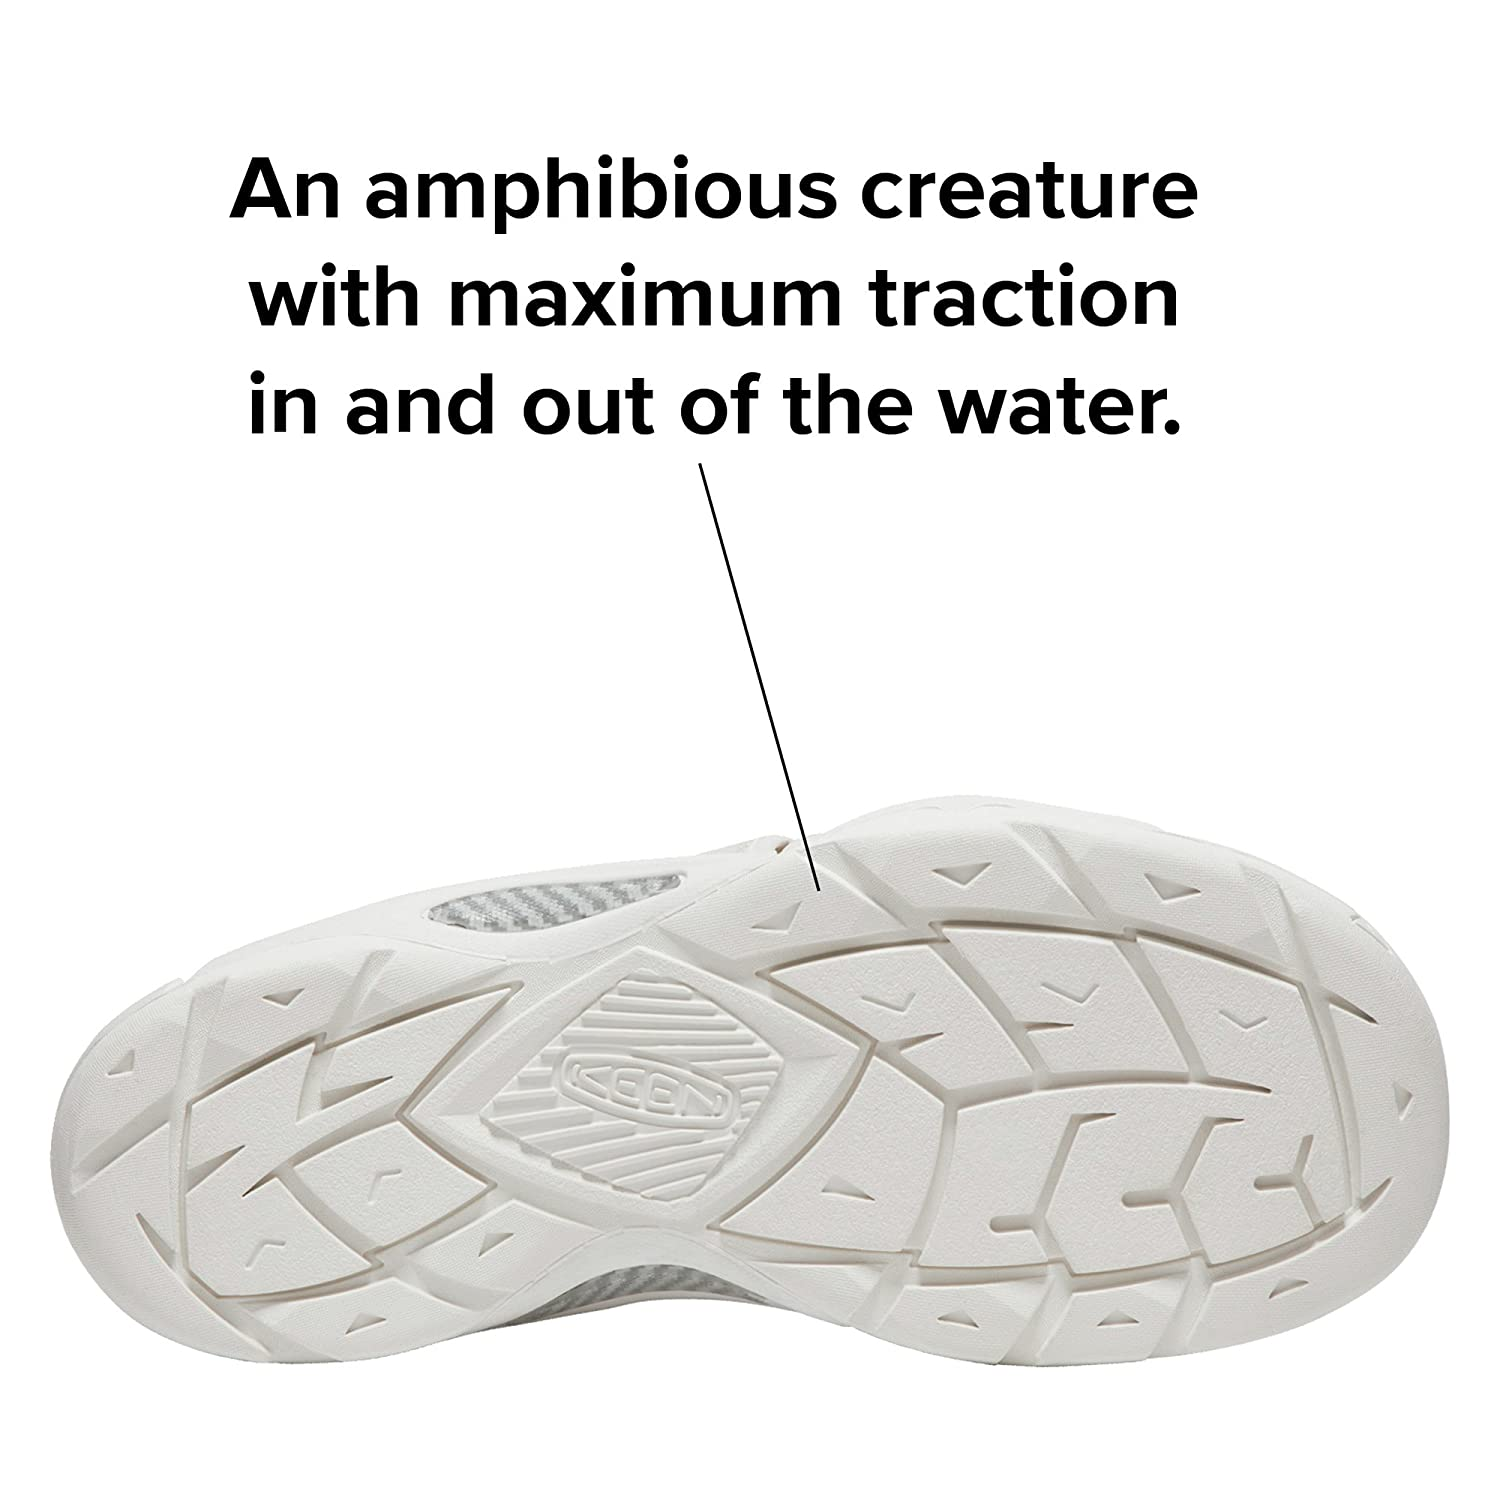 KEEN Women's EVOFIT ONE Water Sandal for Outdoor Adventures B072QR6BZ9 8 M US|Triple White